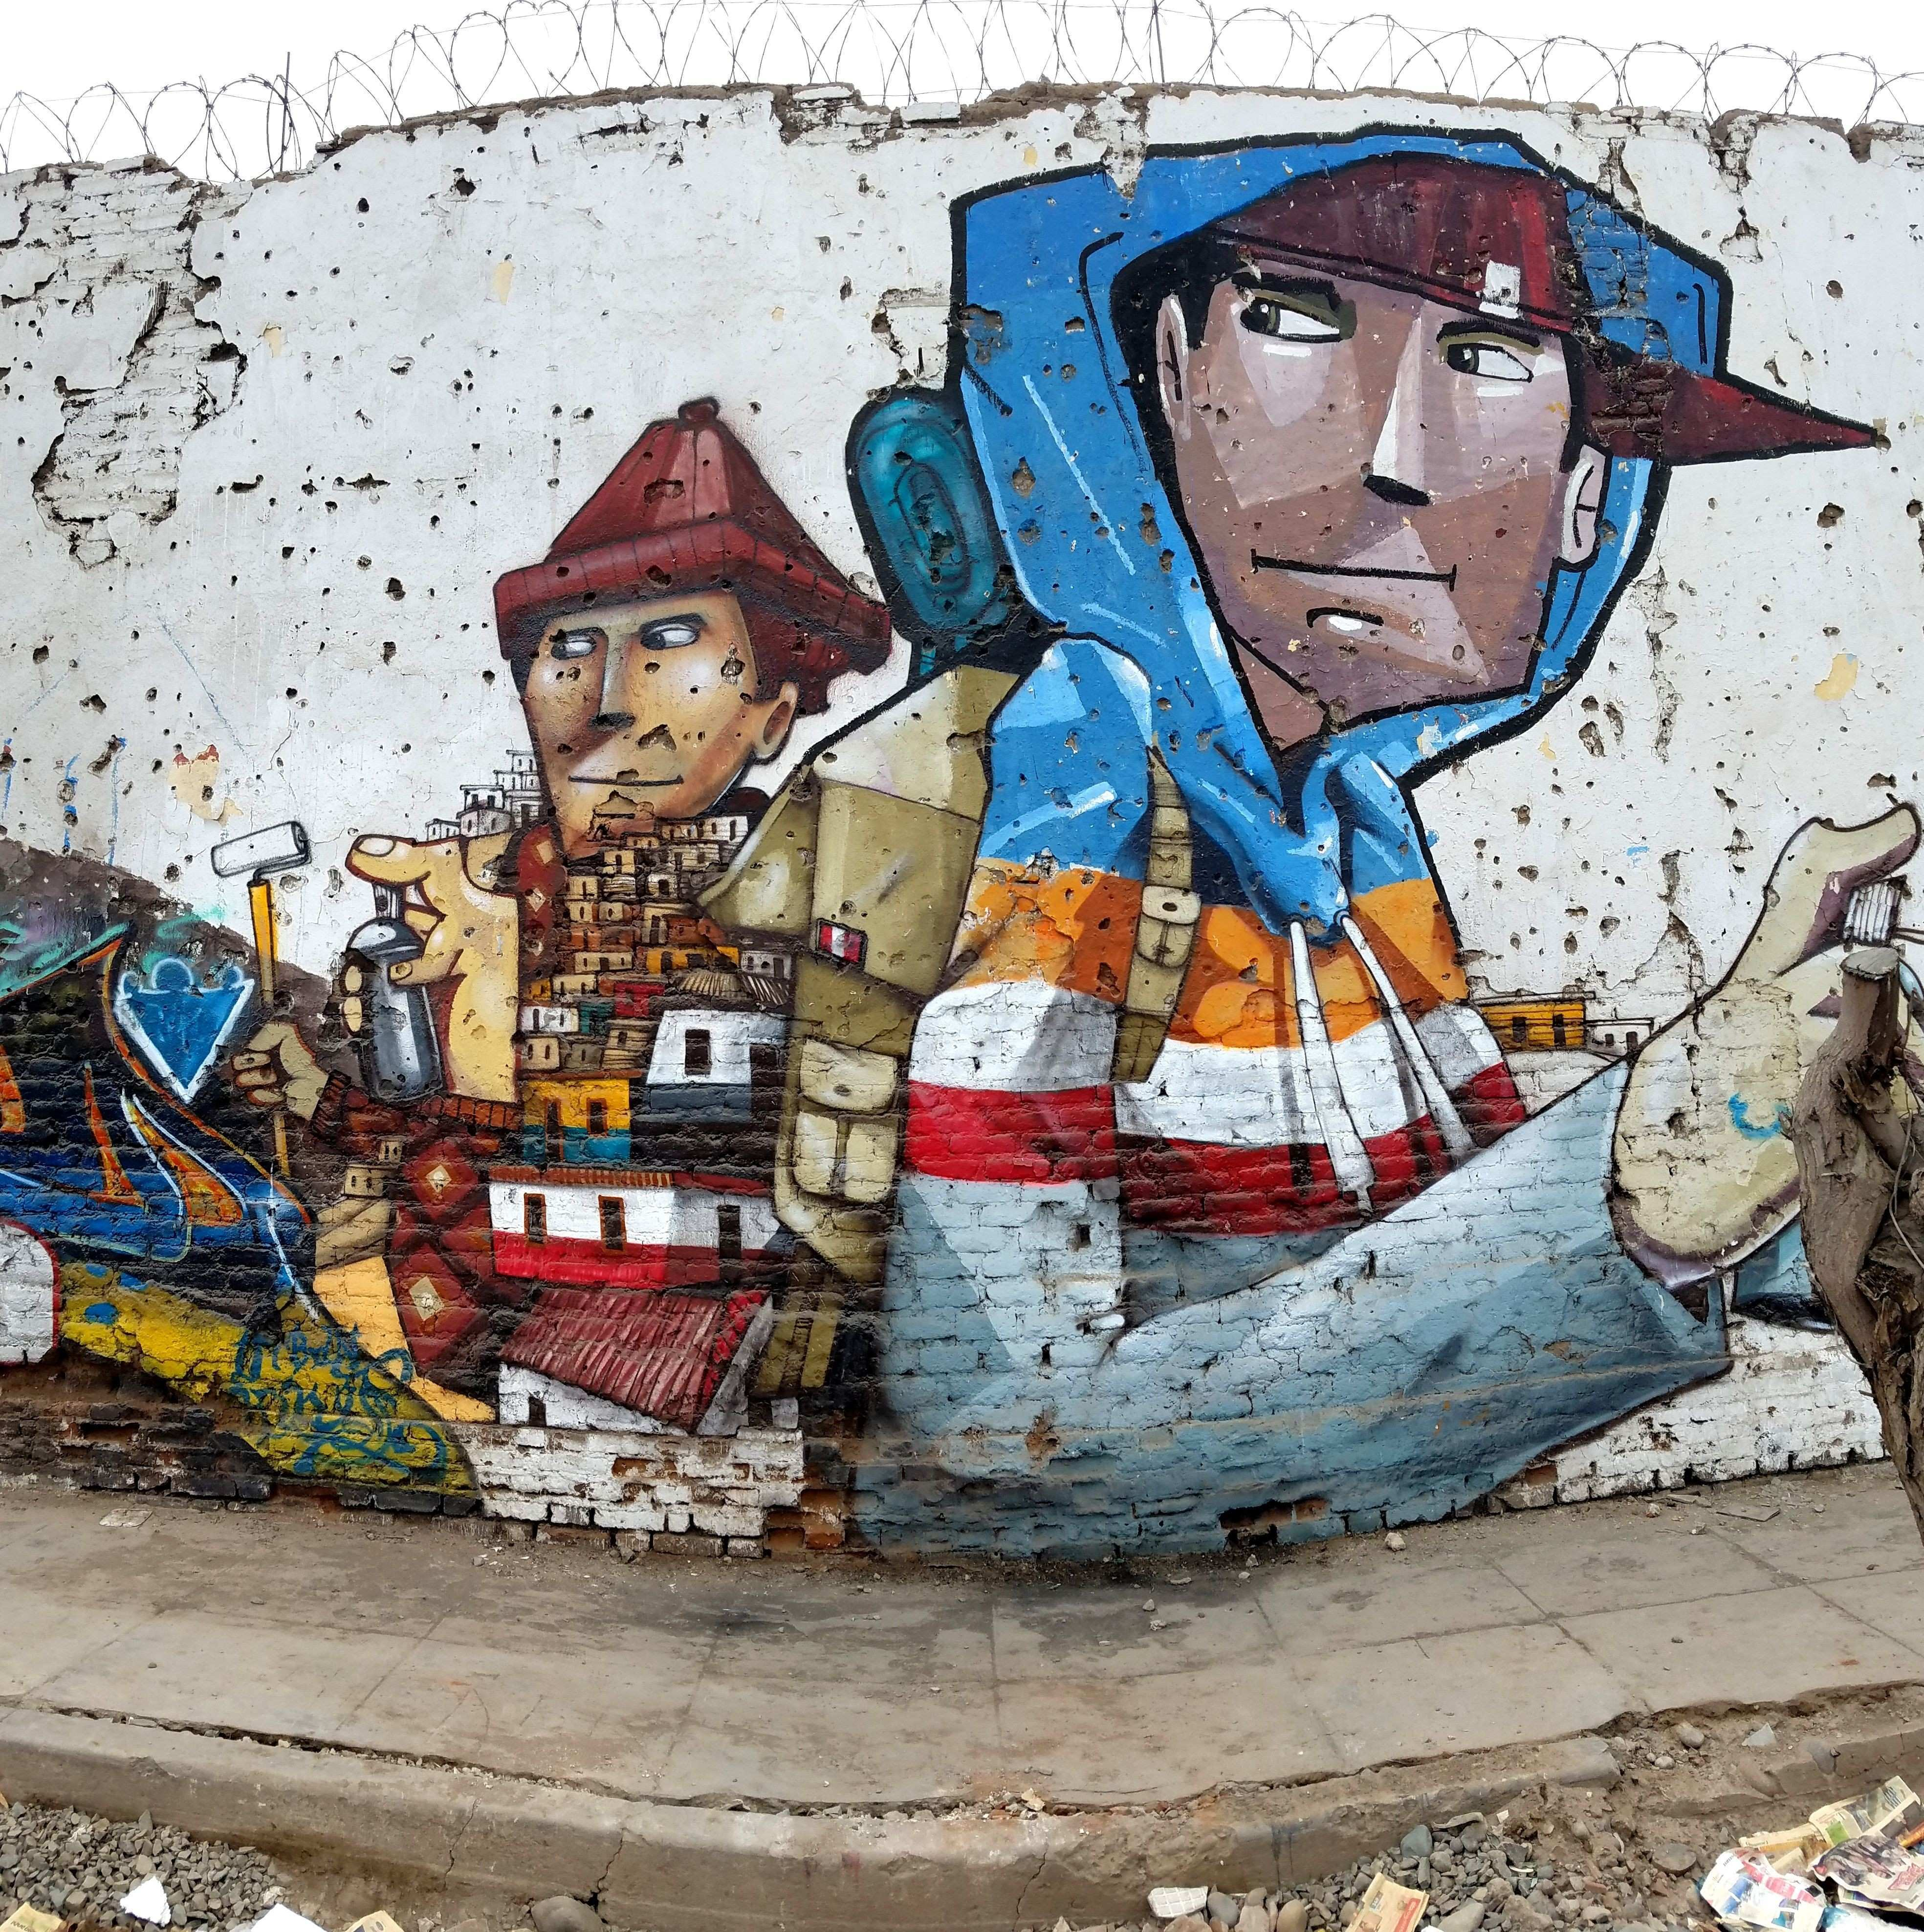 Rimac Lima Peru Street Art & Graffiti Honestly one would not